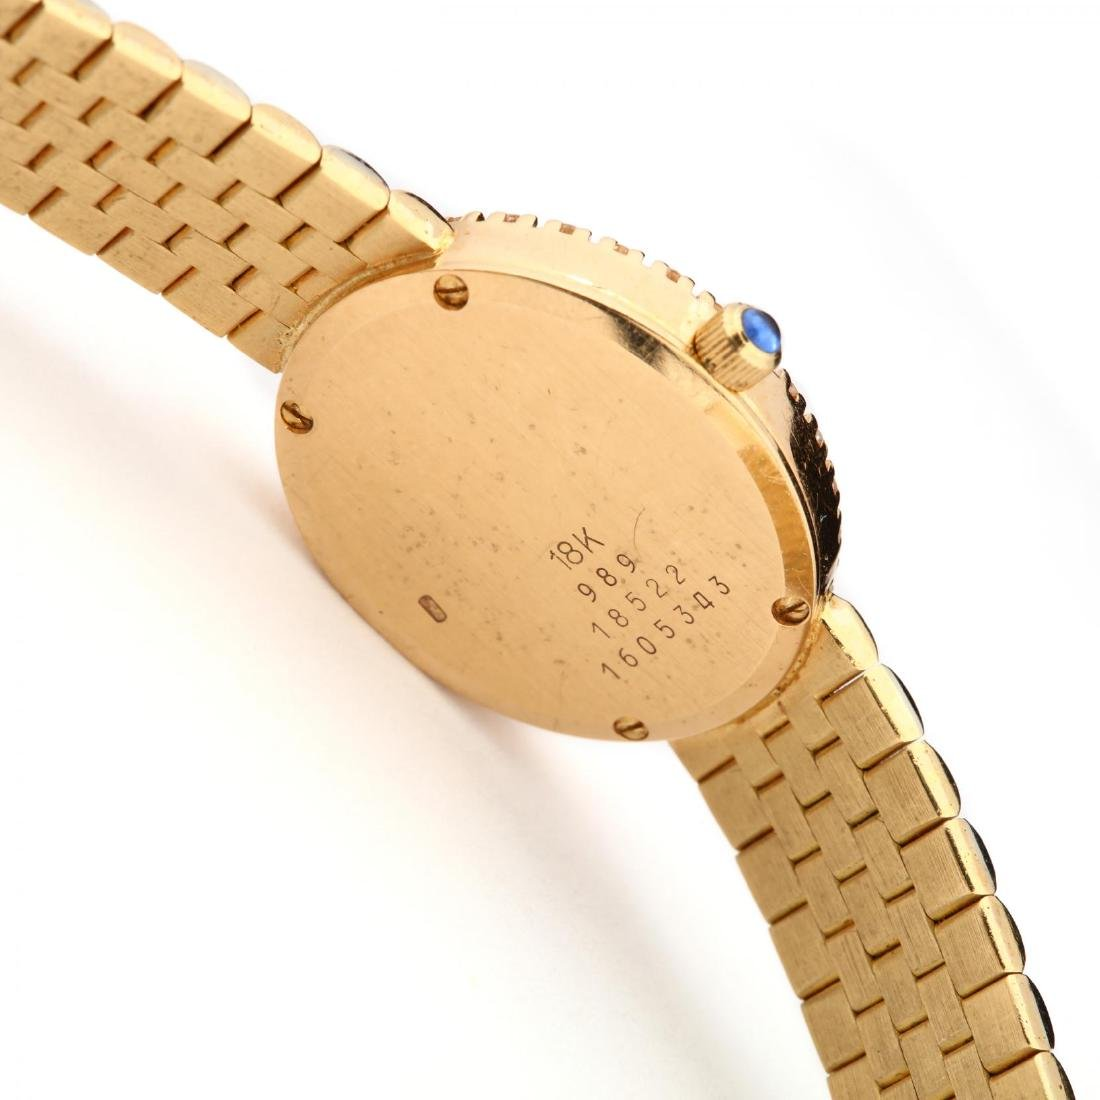 Lady's 18KT Gold and Diamond Watch, Baume & Mercier - 2